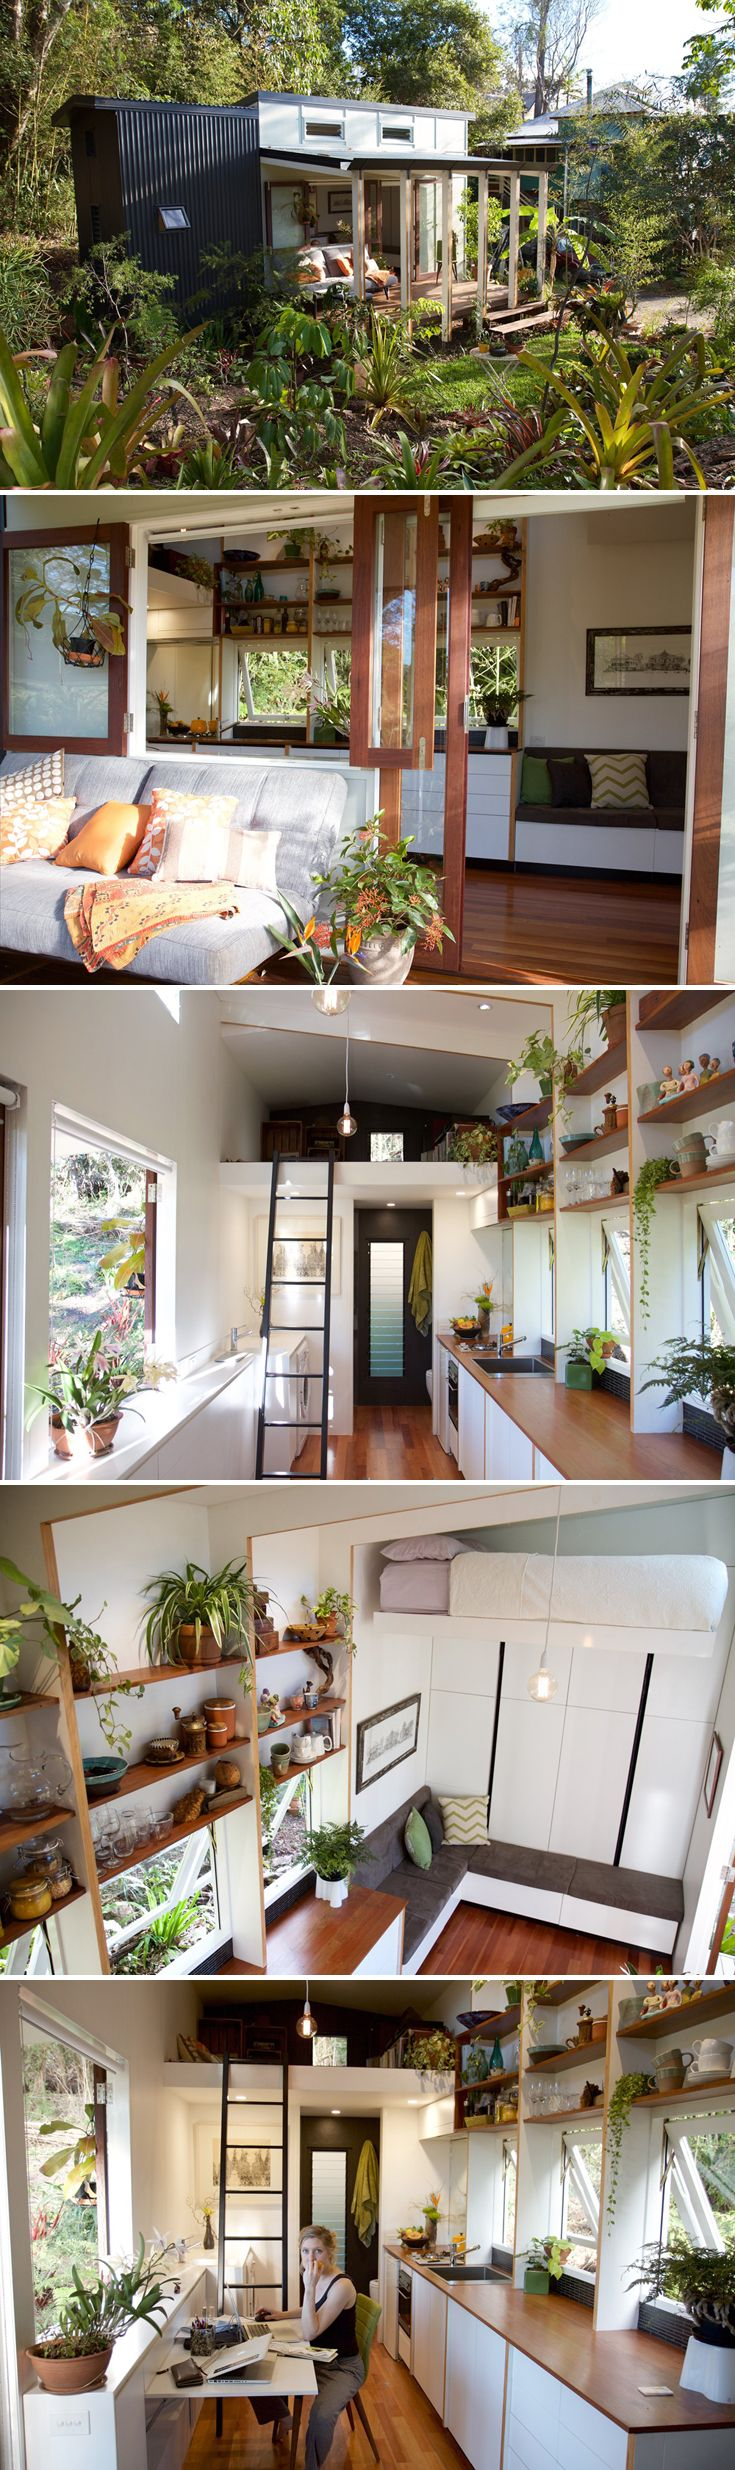 This 18 square meter (~193 square foot) tiny house in Australia contains high-end detailing and fixtures, a custom-designed retractable bed, and custom cabinetry.